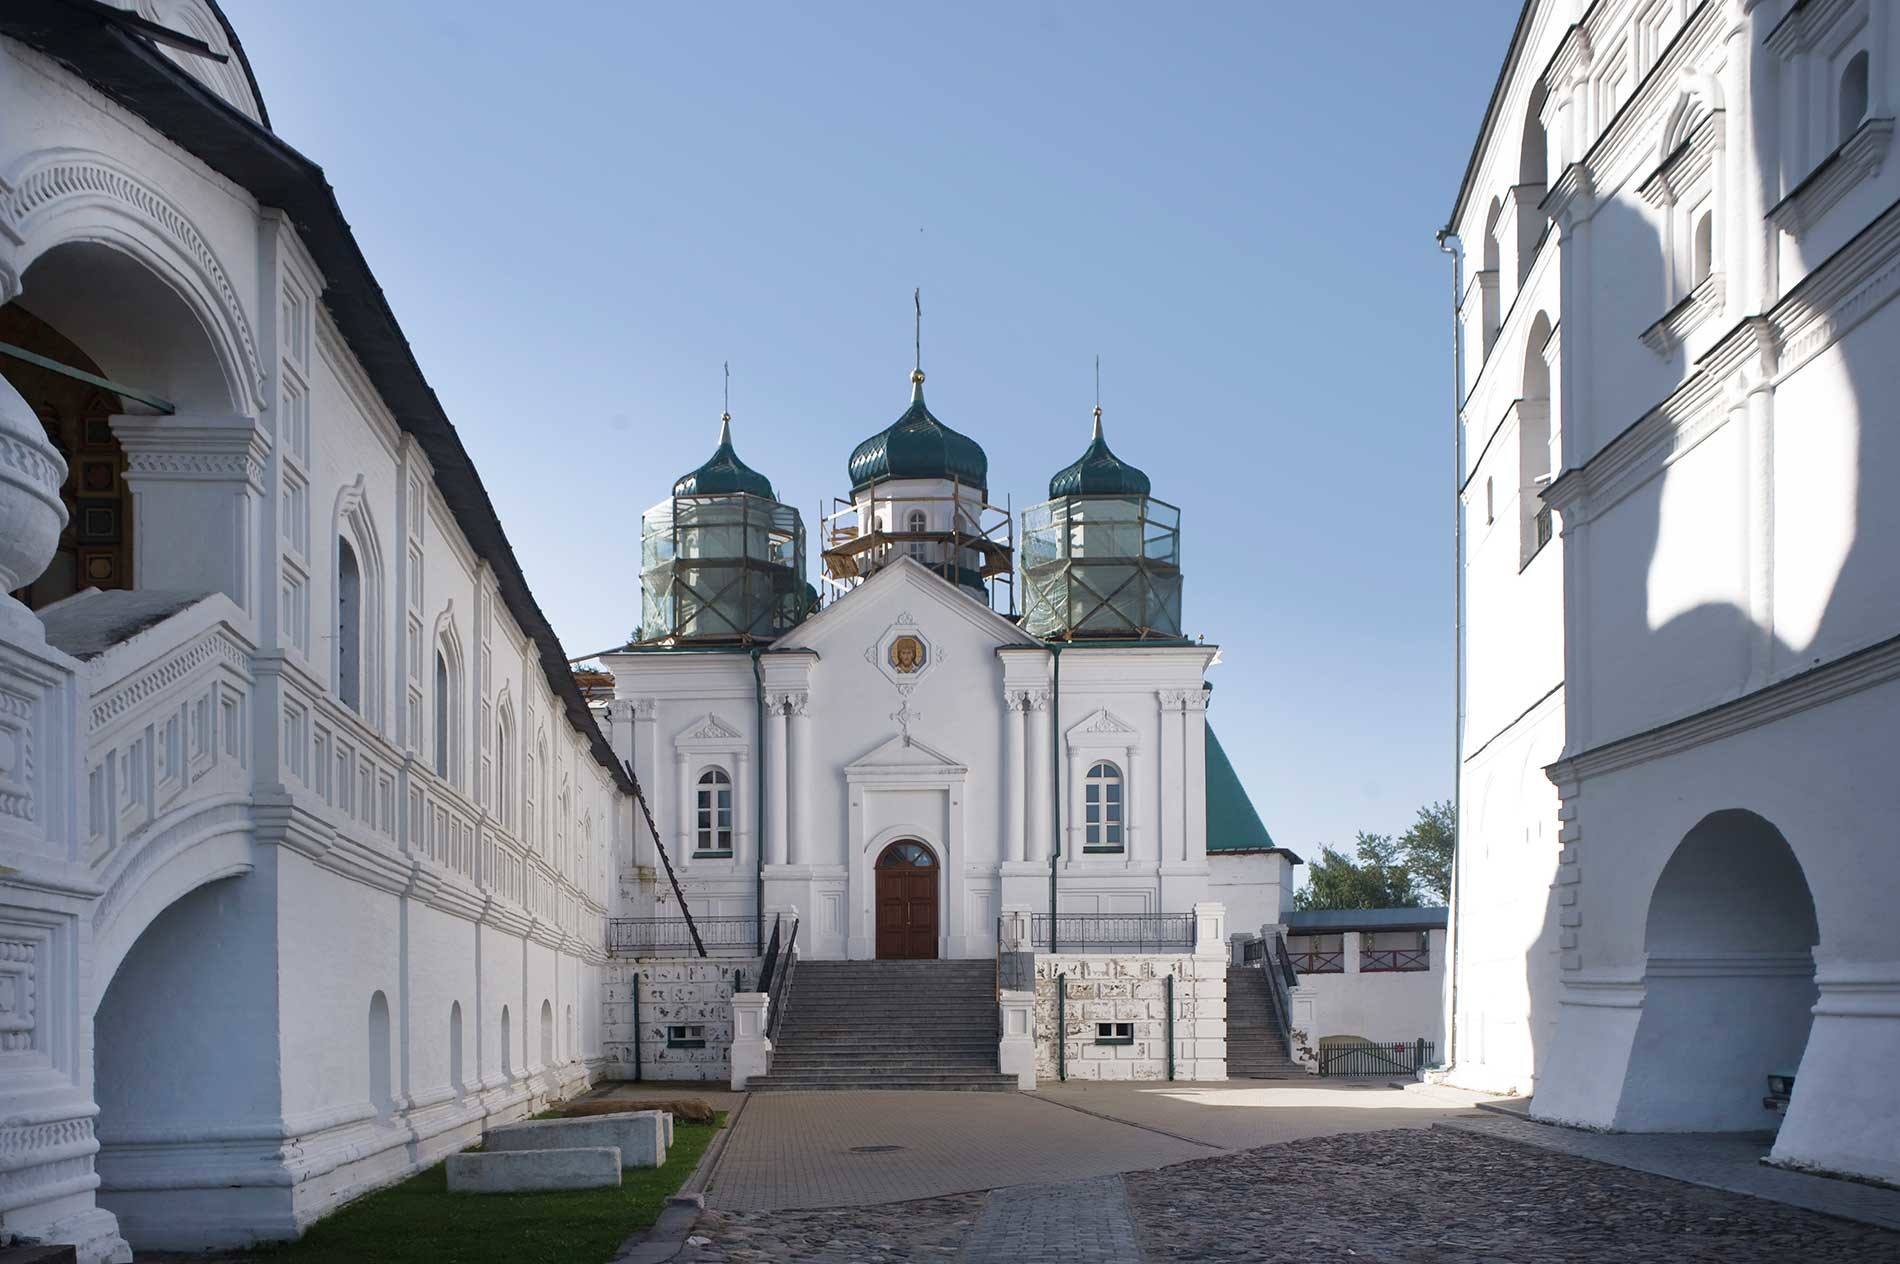 Trinity-Ipatiev Monastery. From left: Trinity Cathedral, west gallery; Cathedral of Nativity of the Virgin; bell tower. North view. Aug. 13, 2017.